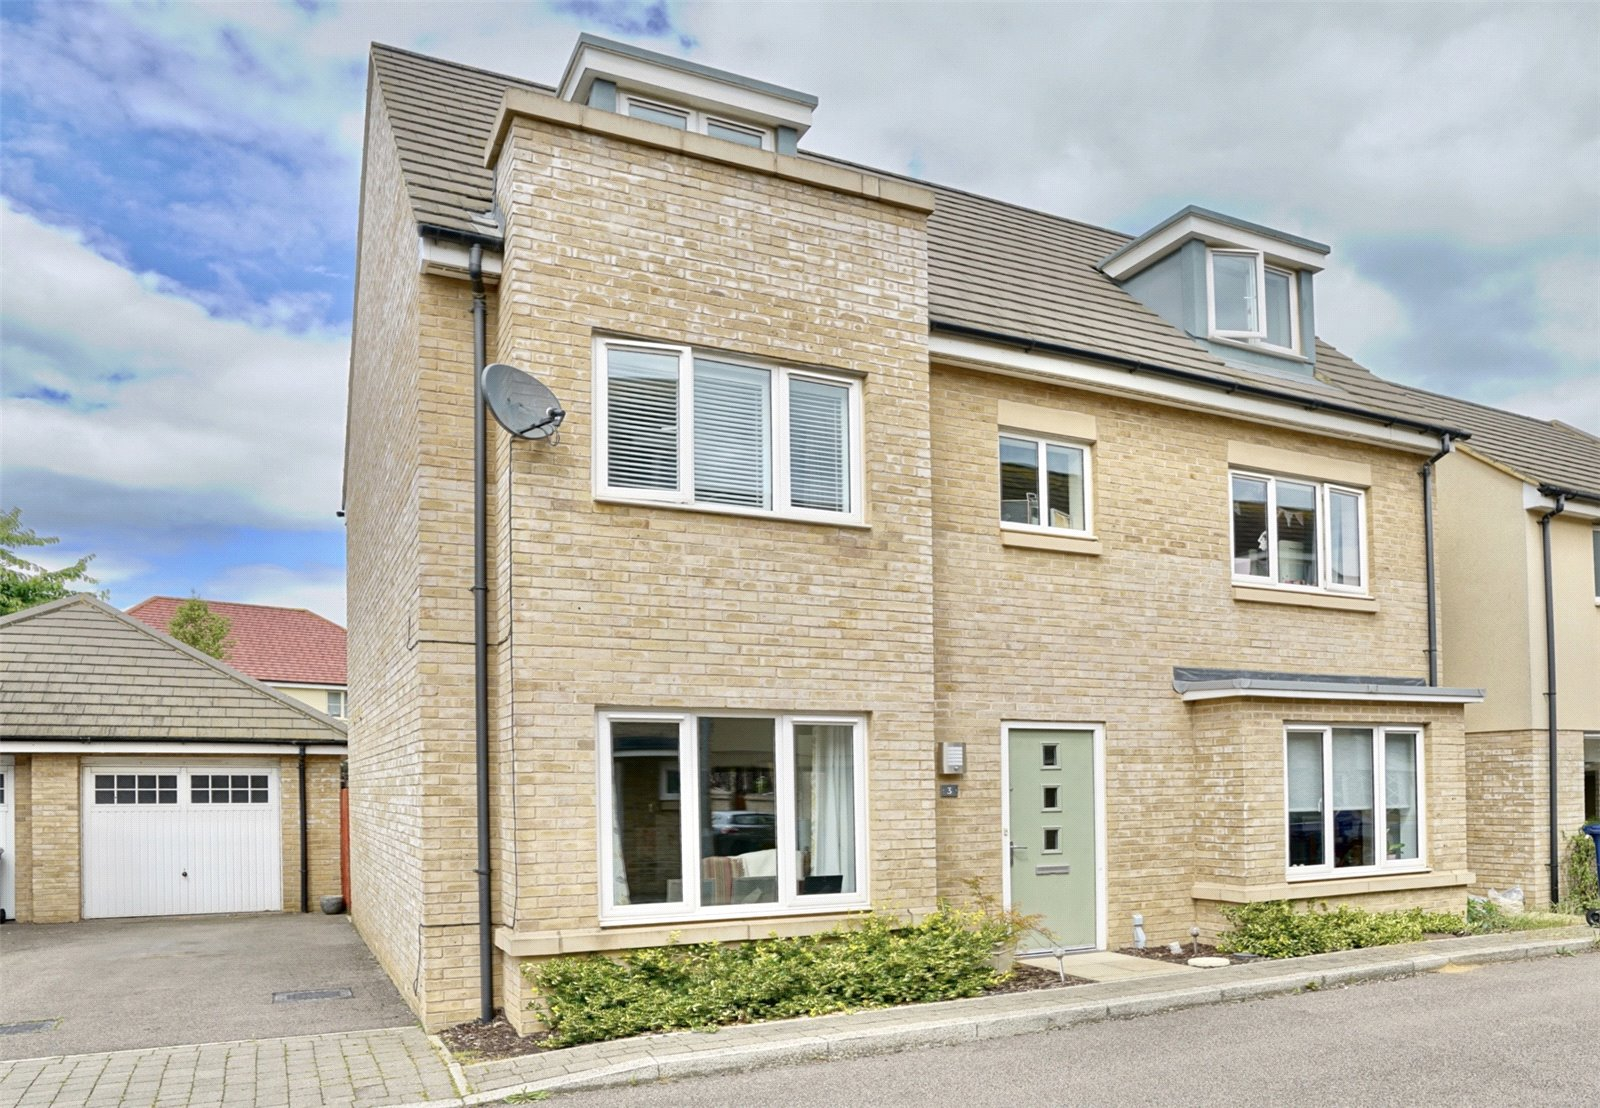 5 bed house for sale in Day Close, St. Neots  - Property Image 1